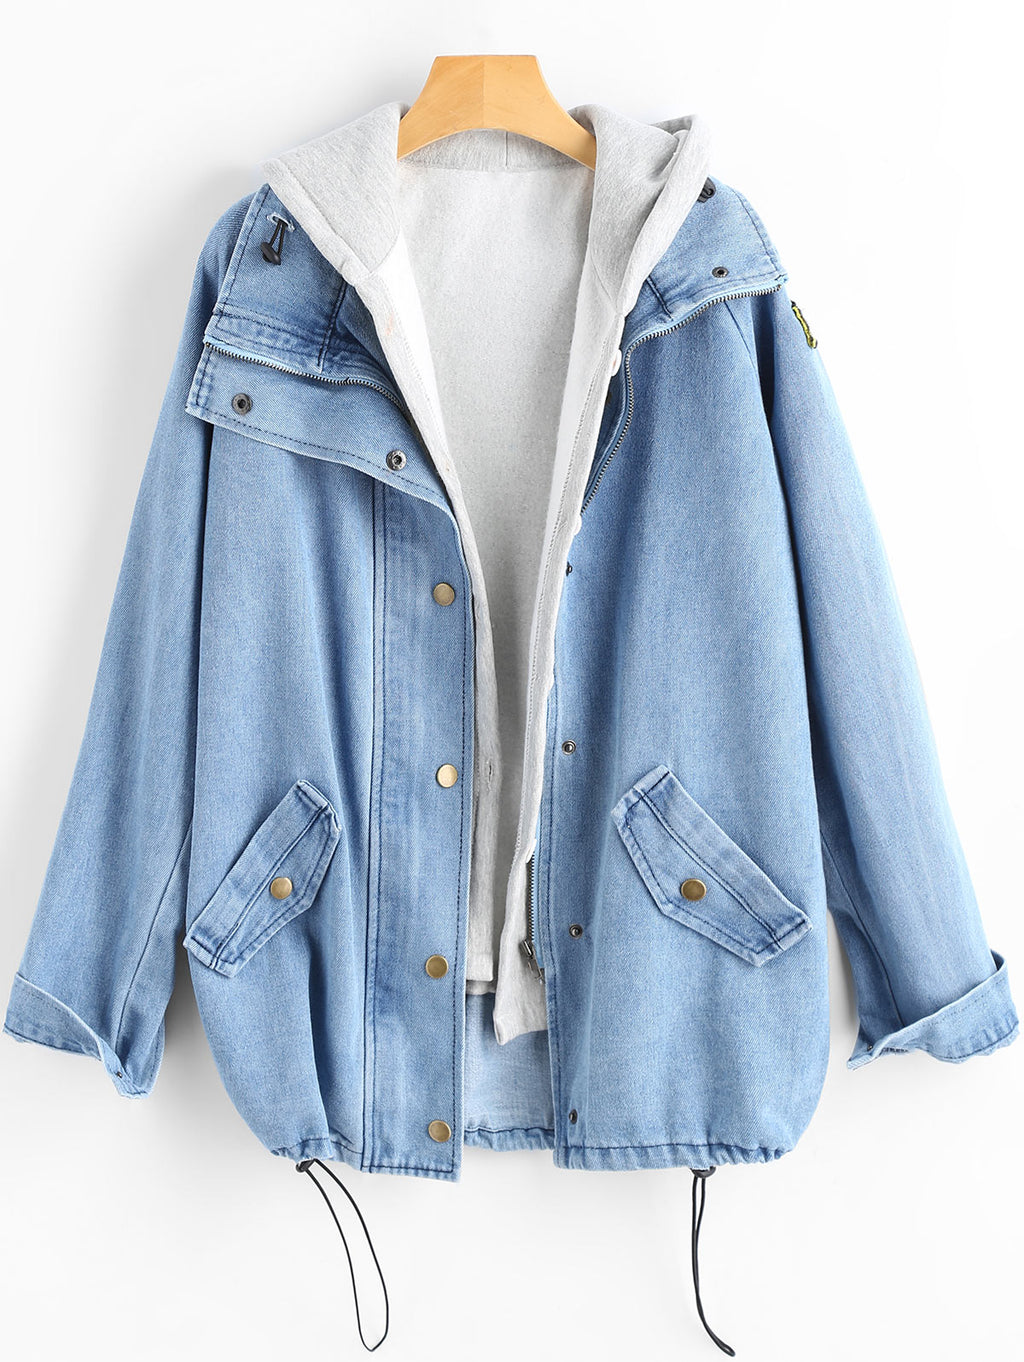 Wipalo 2018 Fashion Button Up Hooded Denim Jacket Coat Autumn Winter Jeans Jackets Female Casual Outwear Wide Waisted Long Tops-geekbuyig